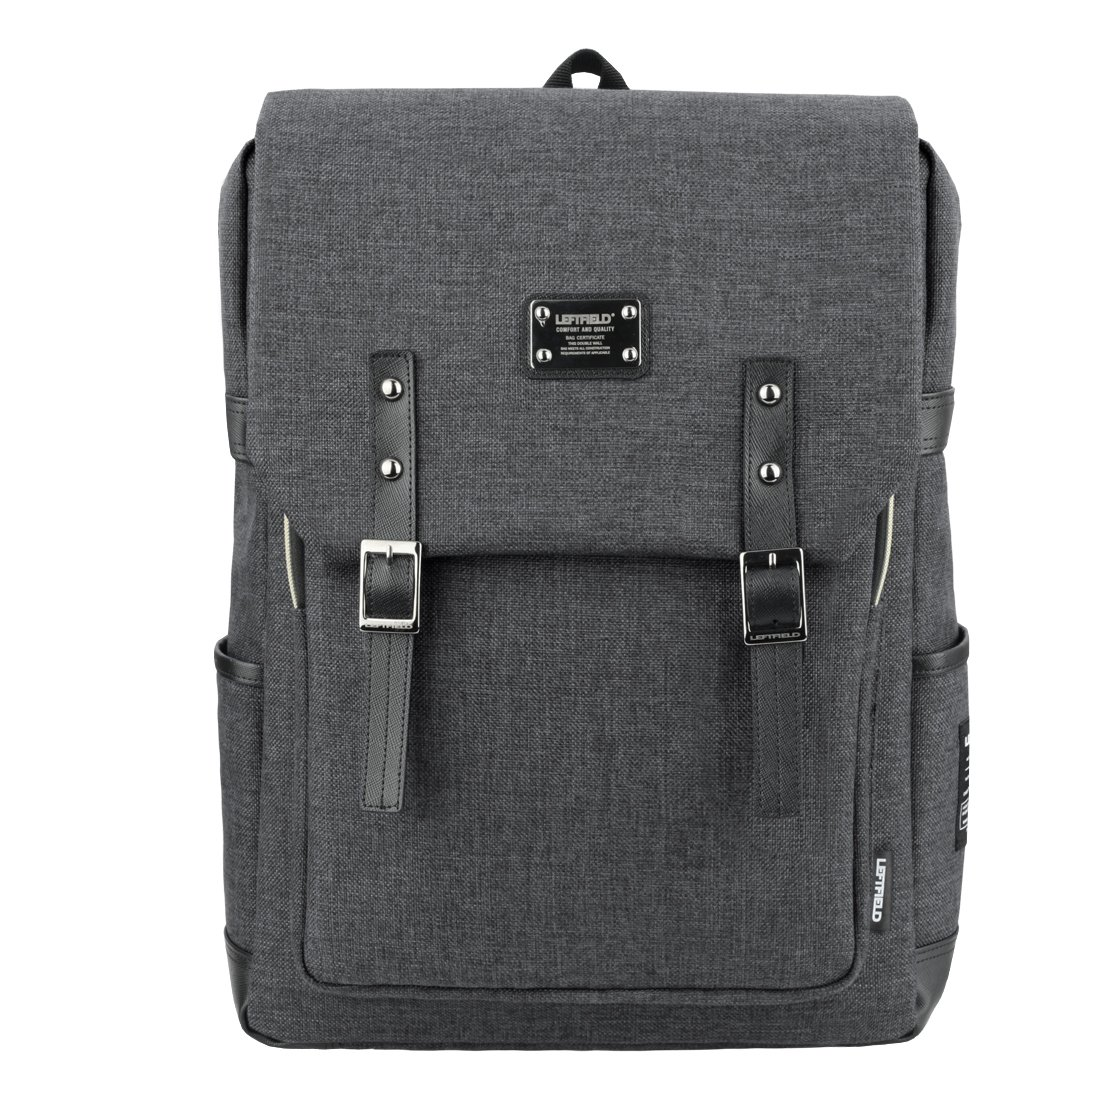 Amazon.com: Backpack 15 Laptop Luggage Casual Bags: Computers ...